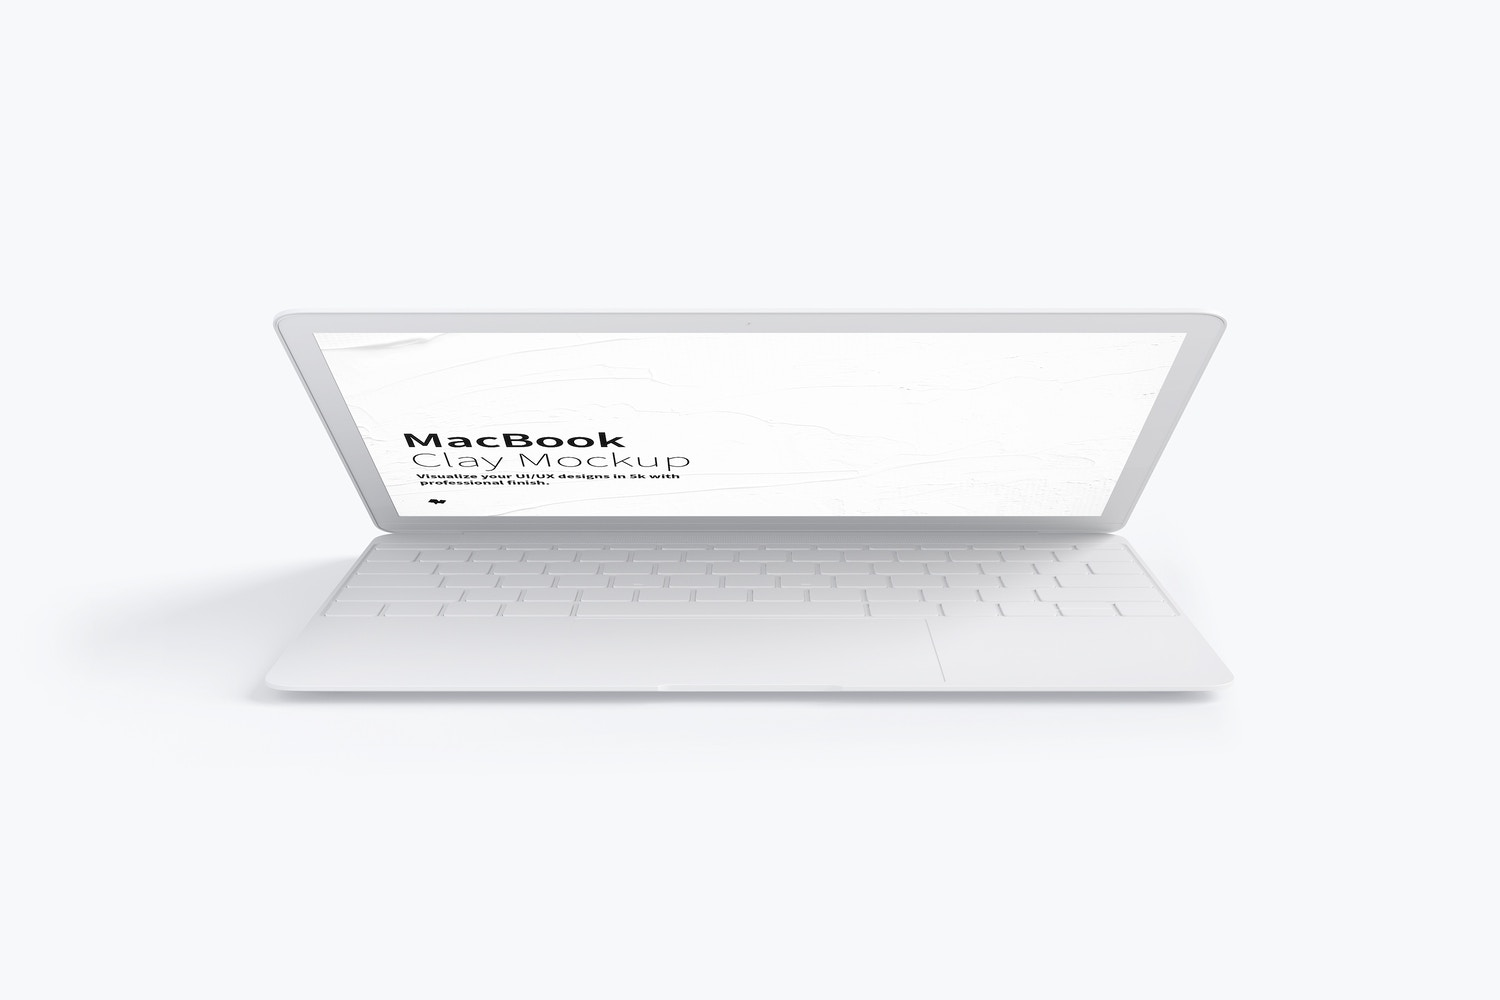 Clay MacBook Mockup, Front View 02 by Original Mockups on Original Mockups